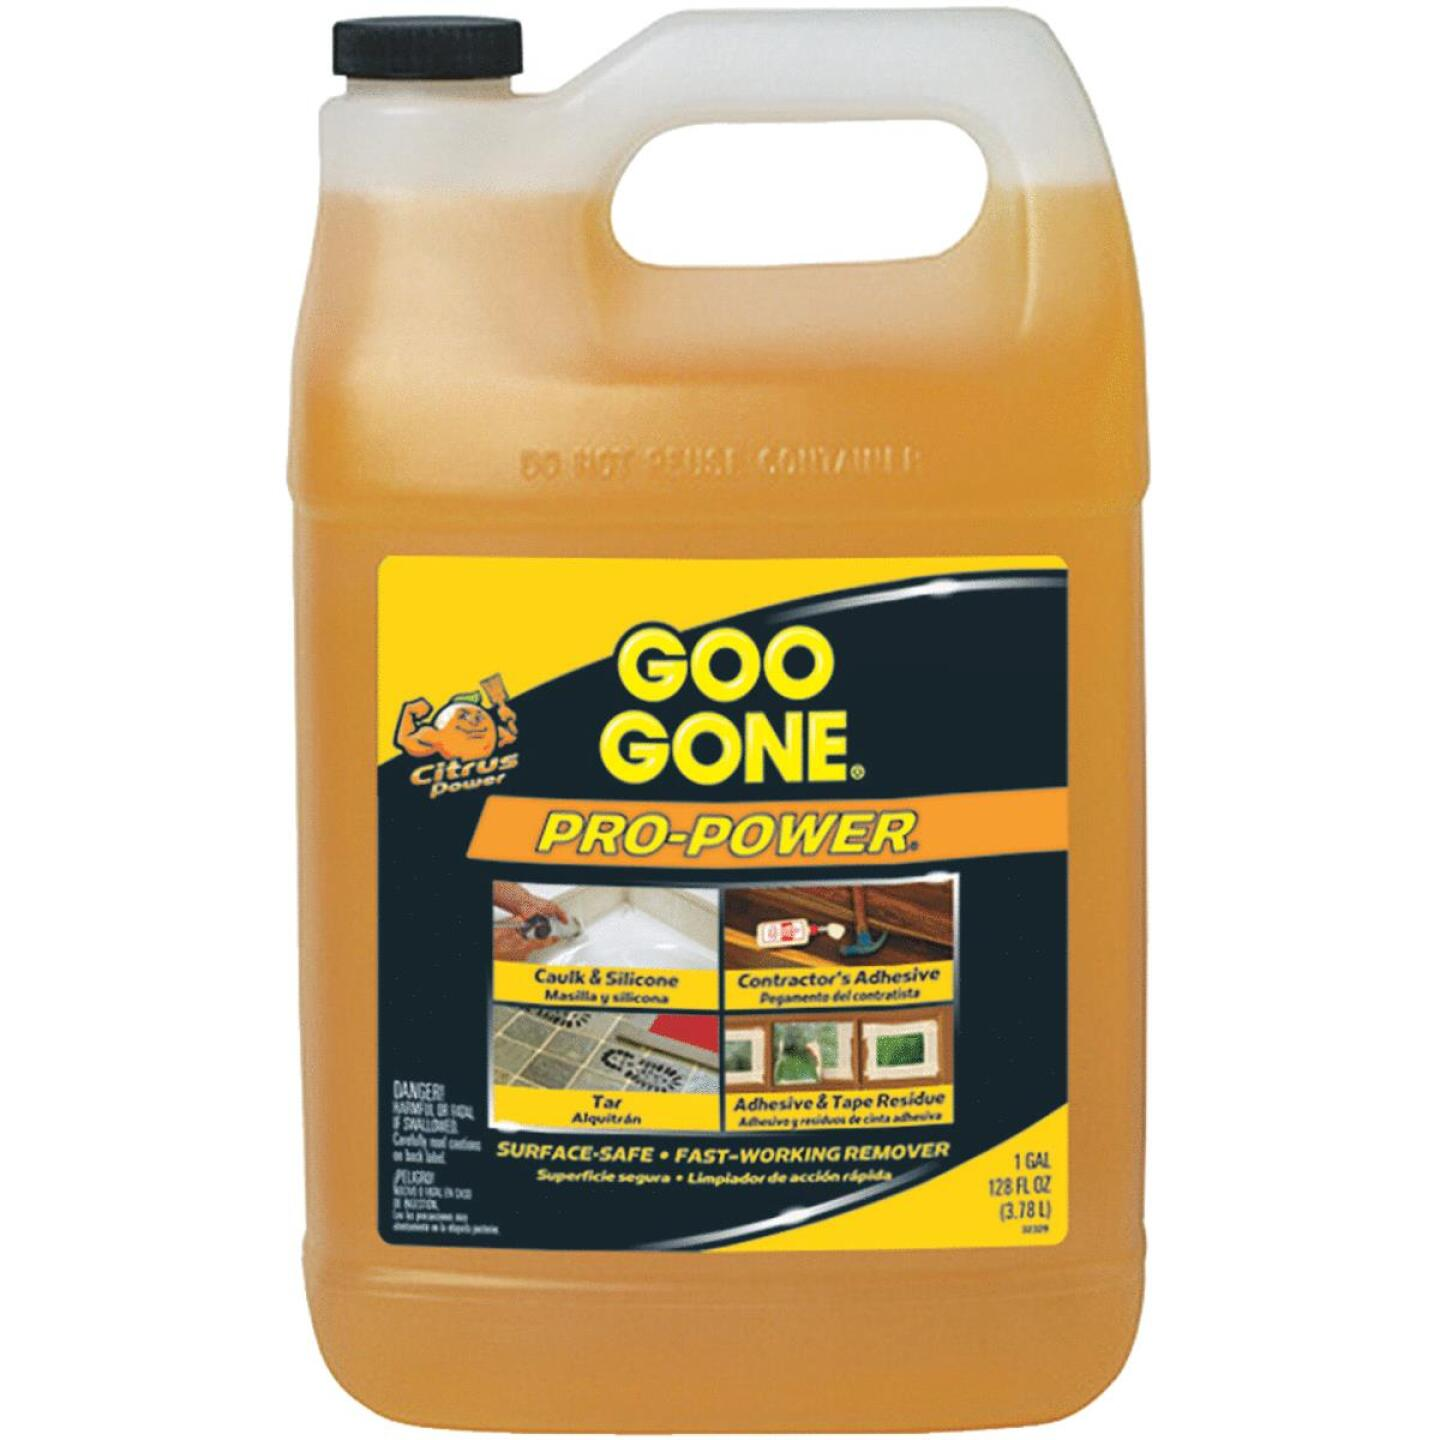 Goo Gone 1 Gal. Pro-Power Adhesive Remover Image 154